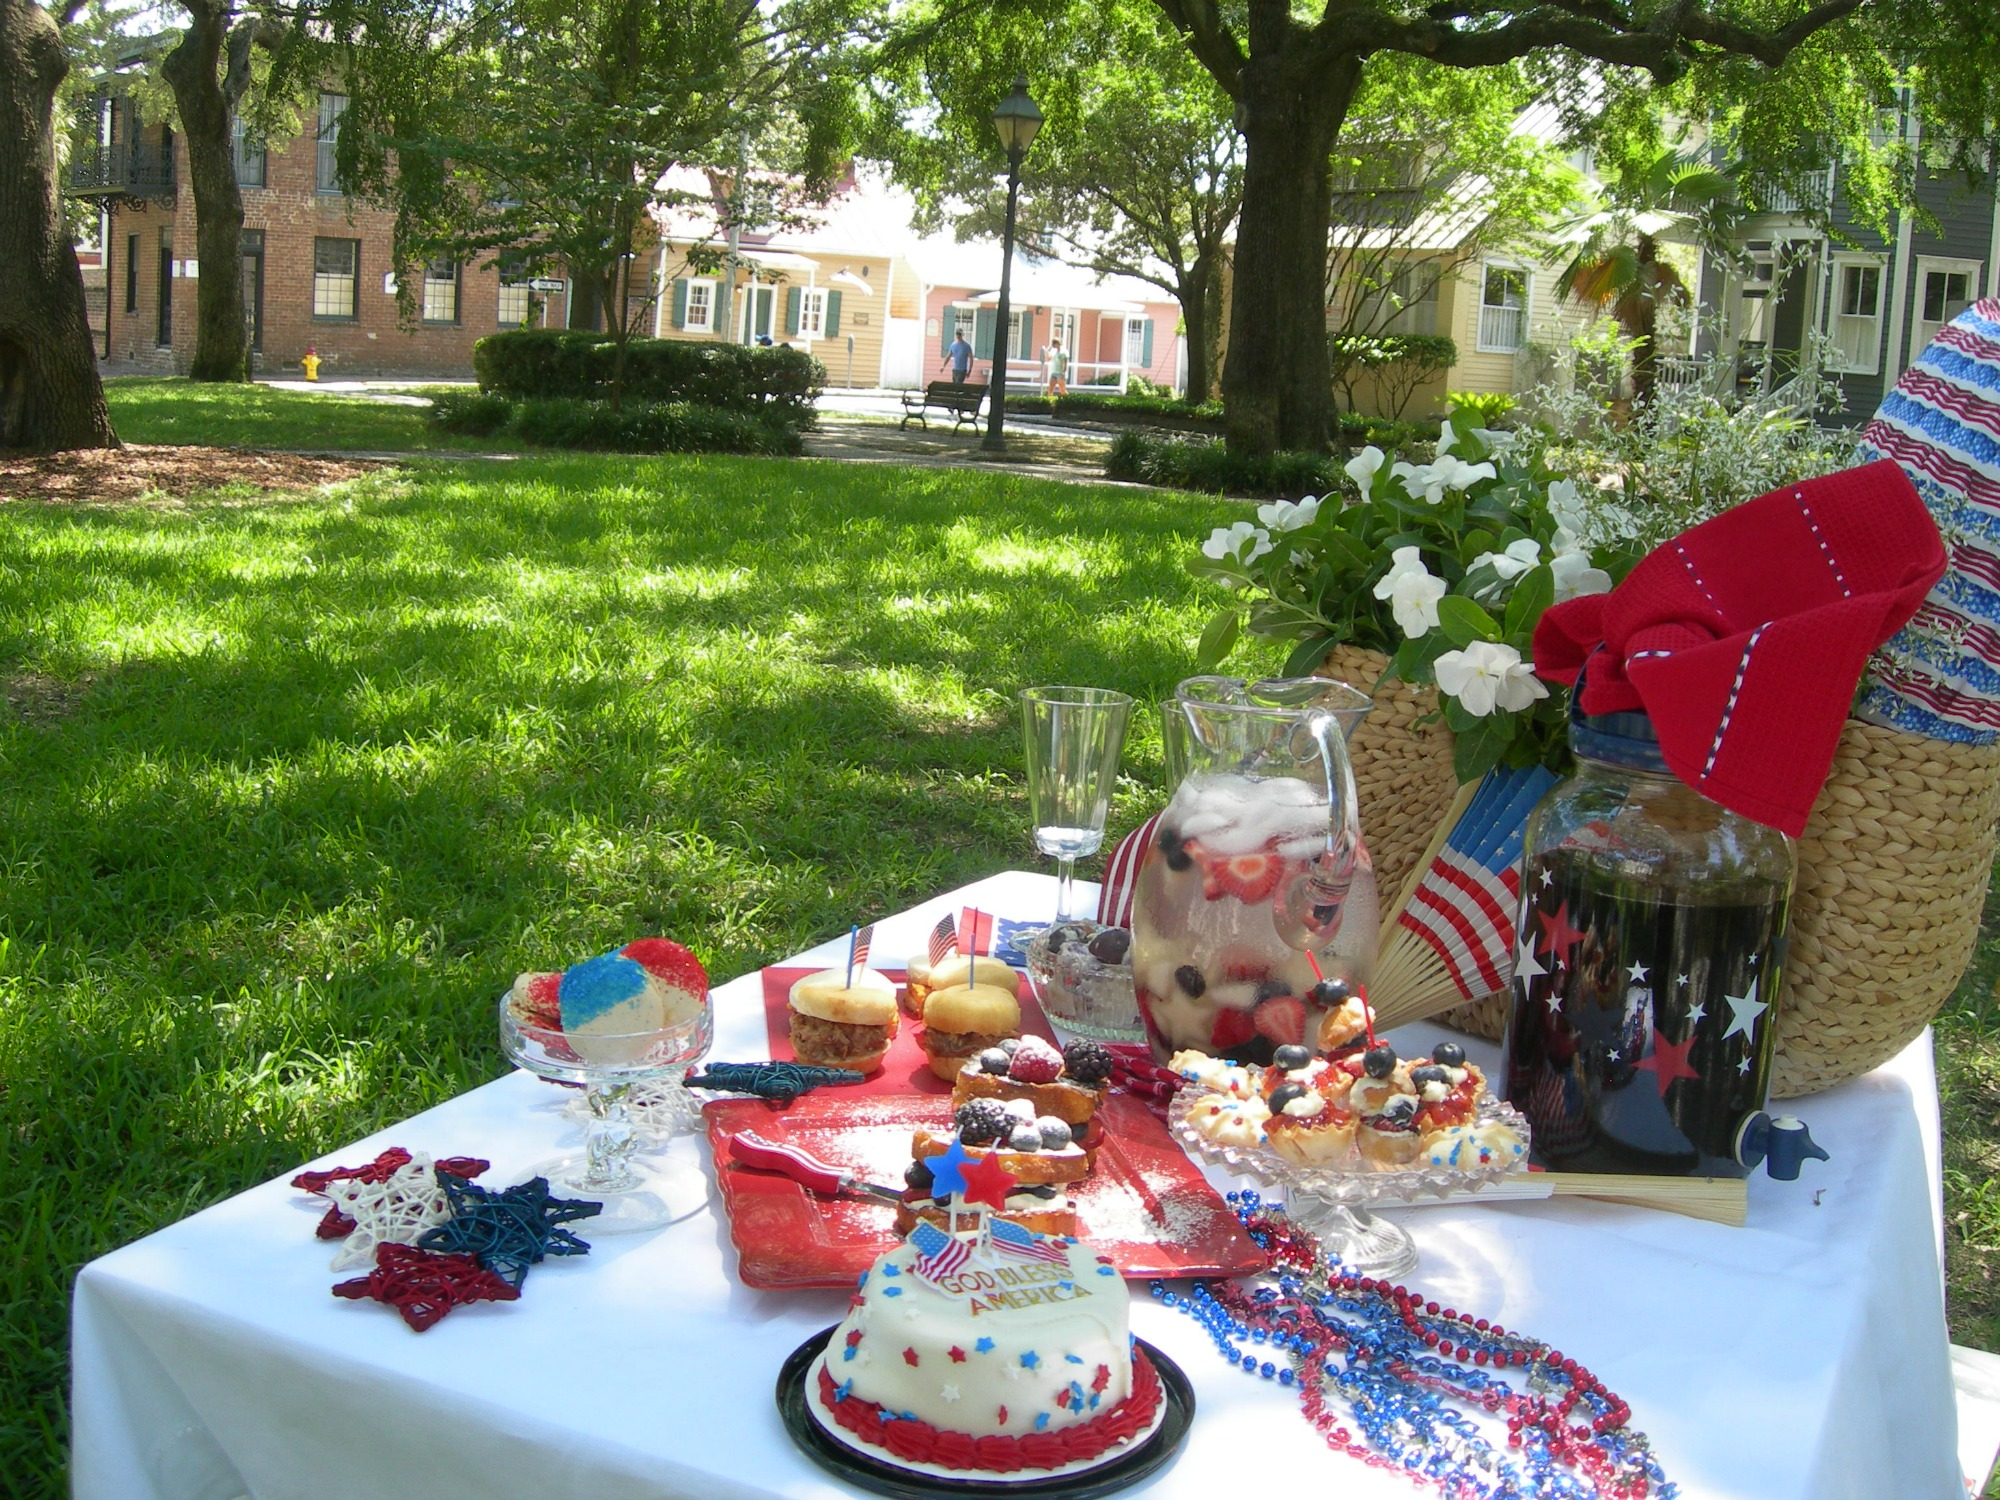 Time for picnics on The Fourth of July. Food to celebrate with Radiant Nursing.